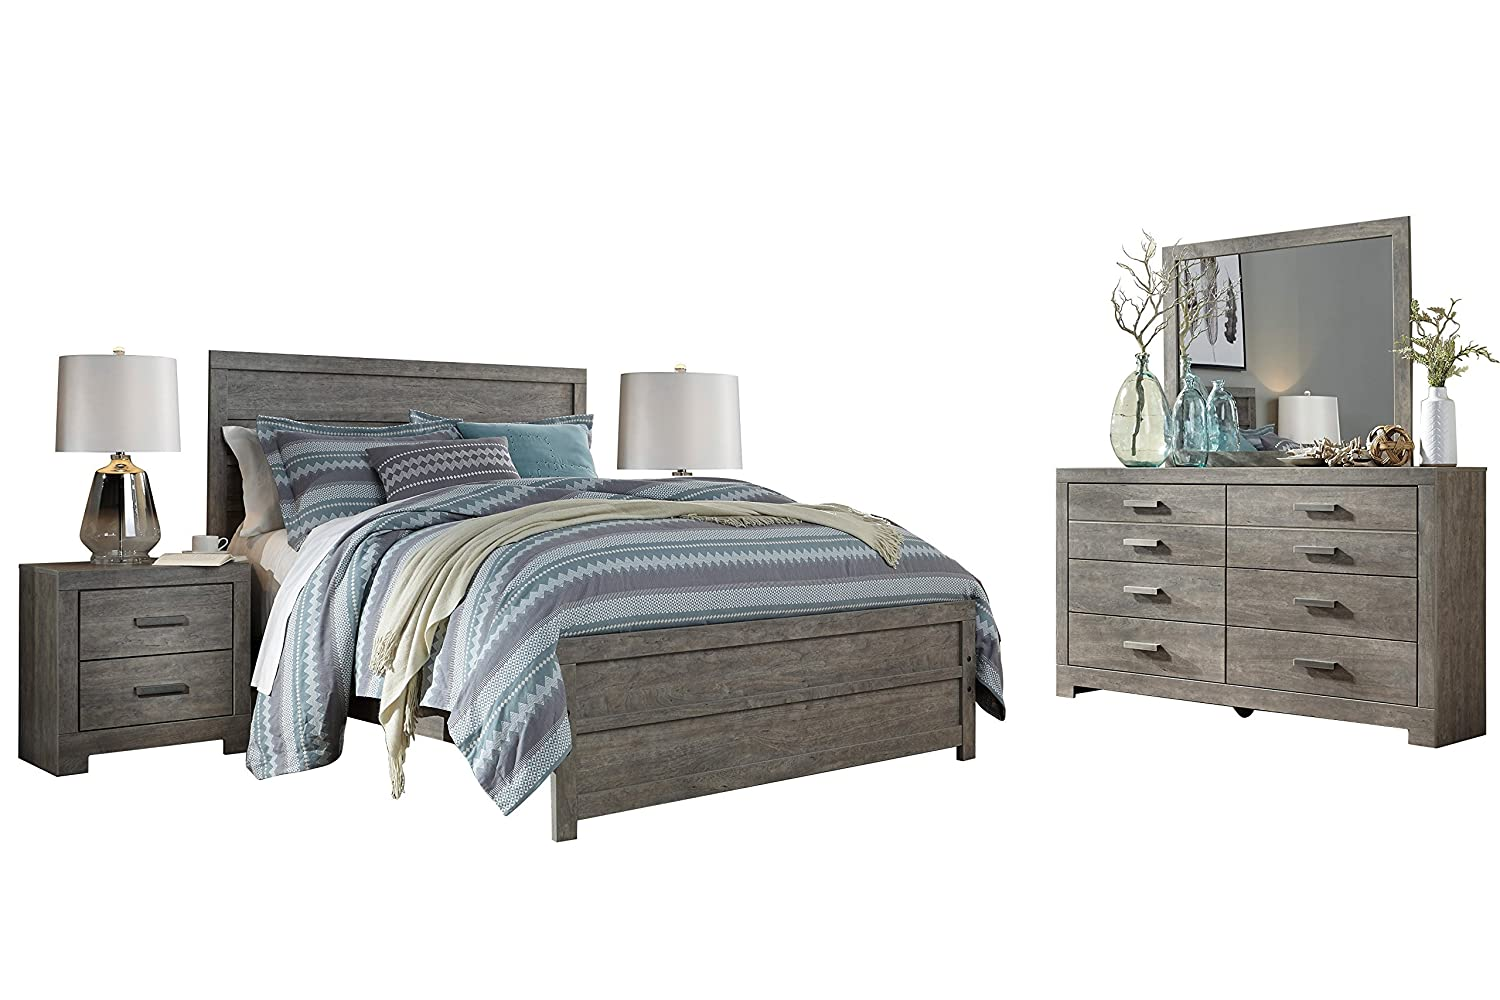 Amazon com ashley culverbach 5pc queen panel bedroom set with two nightstands in gray kitchen dining